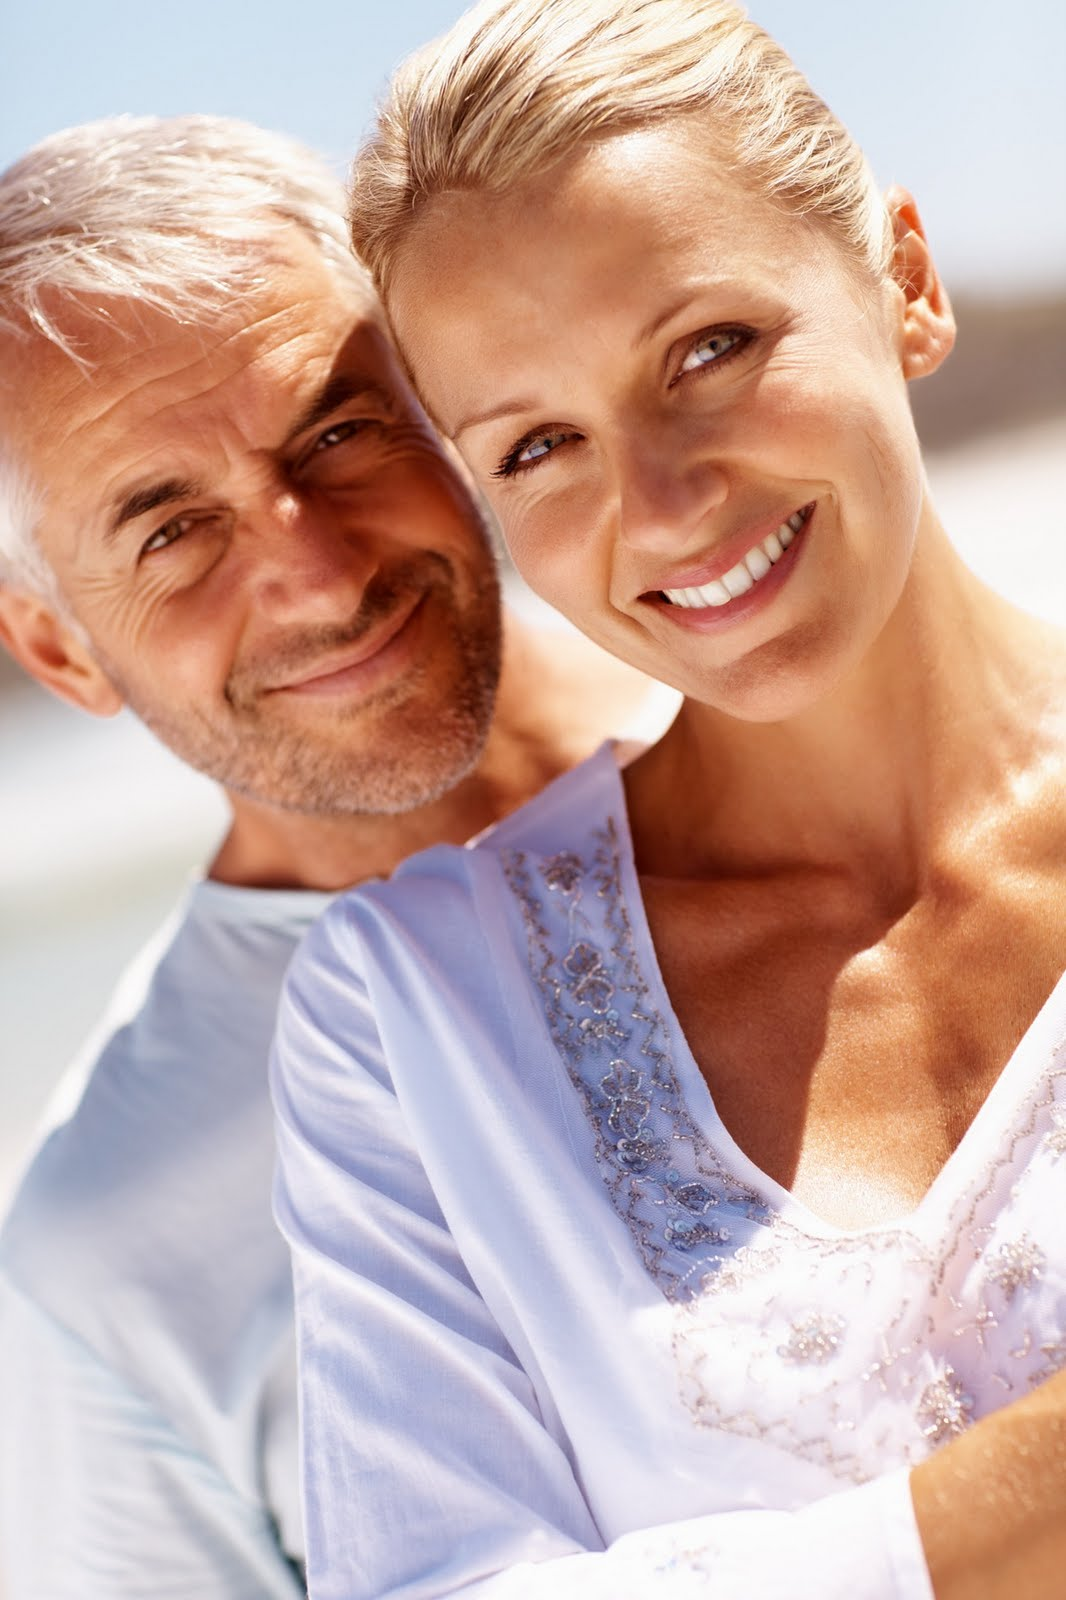 Adult online dating without membership fees